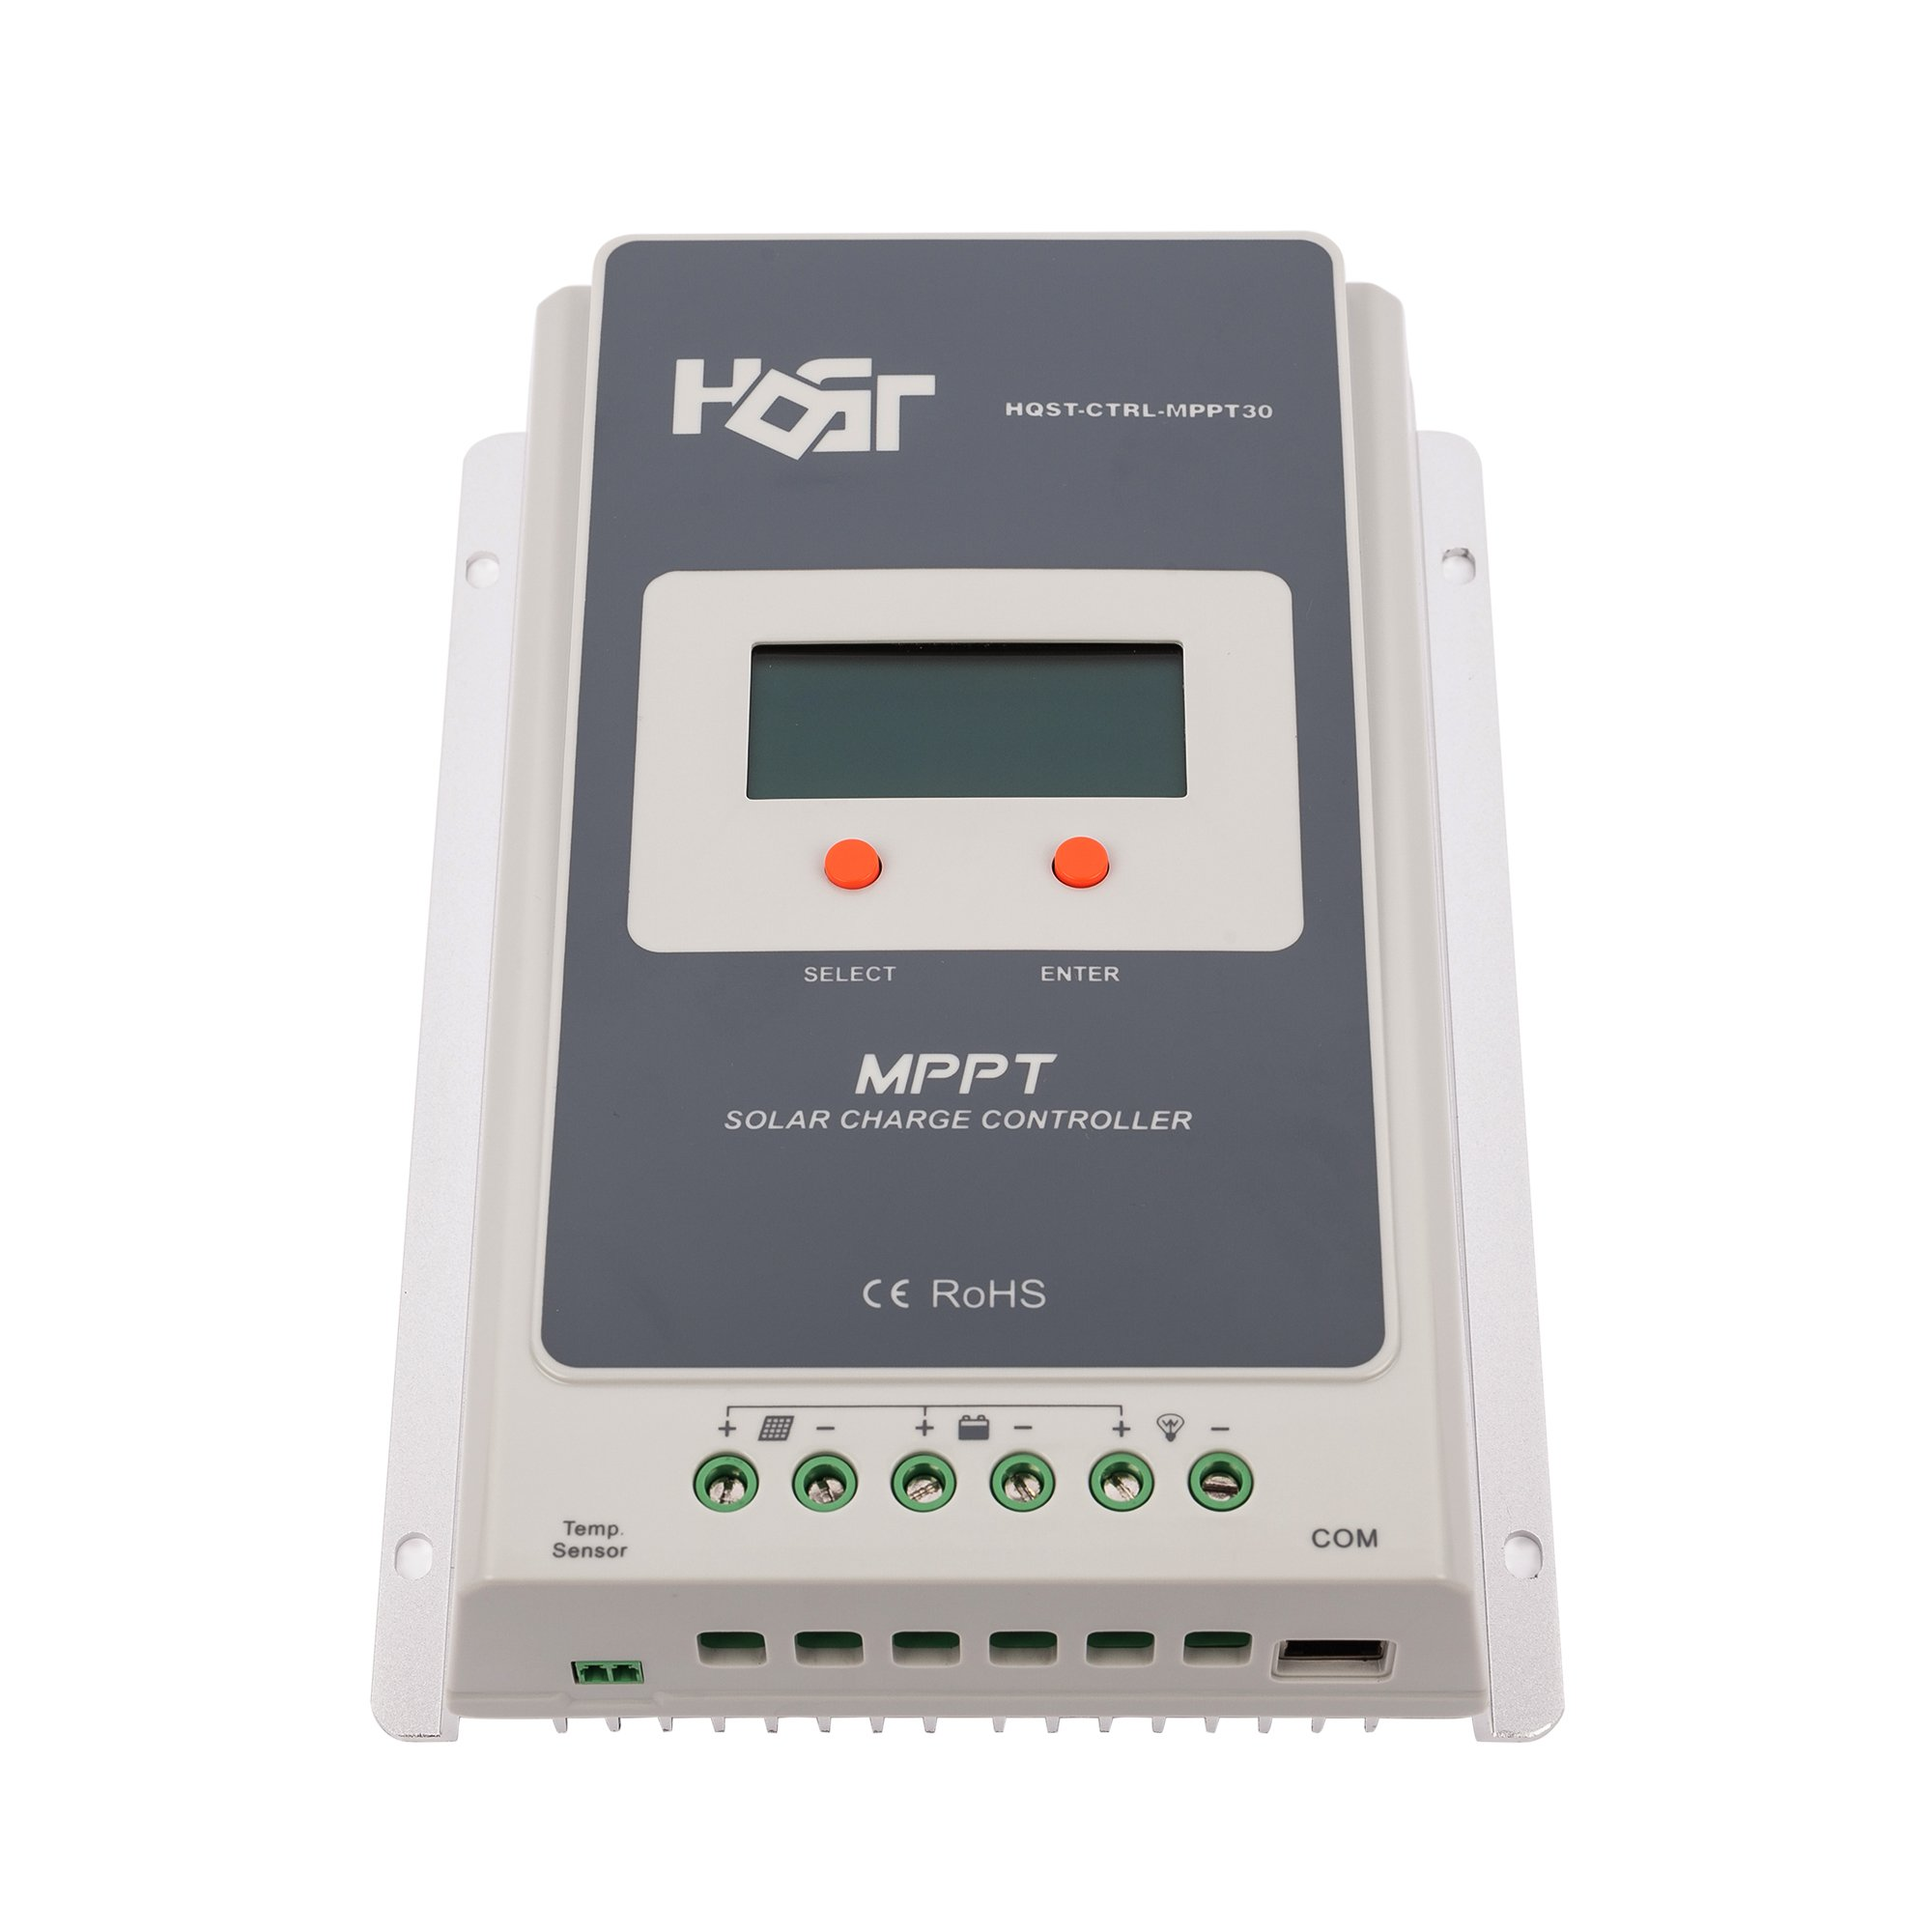 HQST 30A Positive Ground MPPT 12V/24V Battery Solar Charge Controller Multiple Load Control Modes with LCD Display